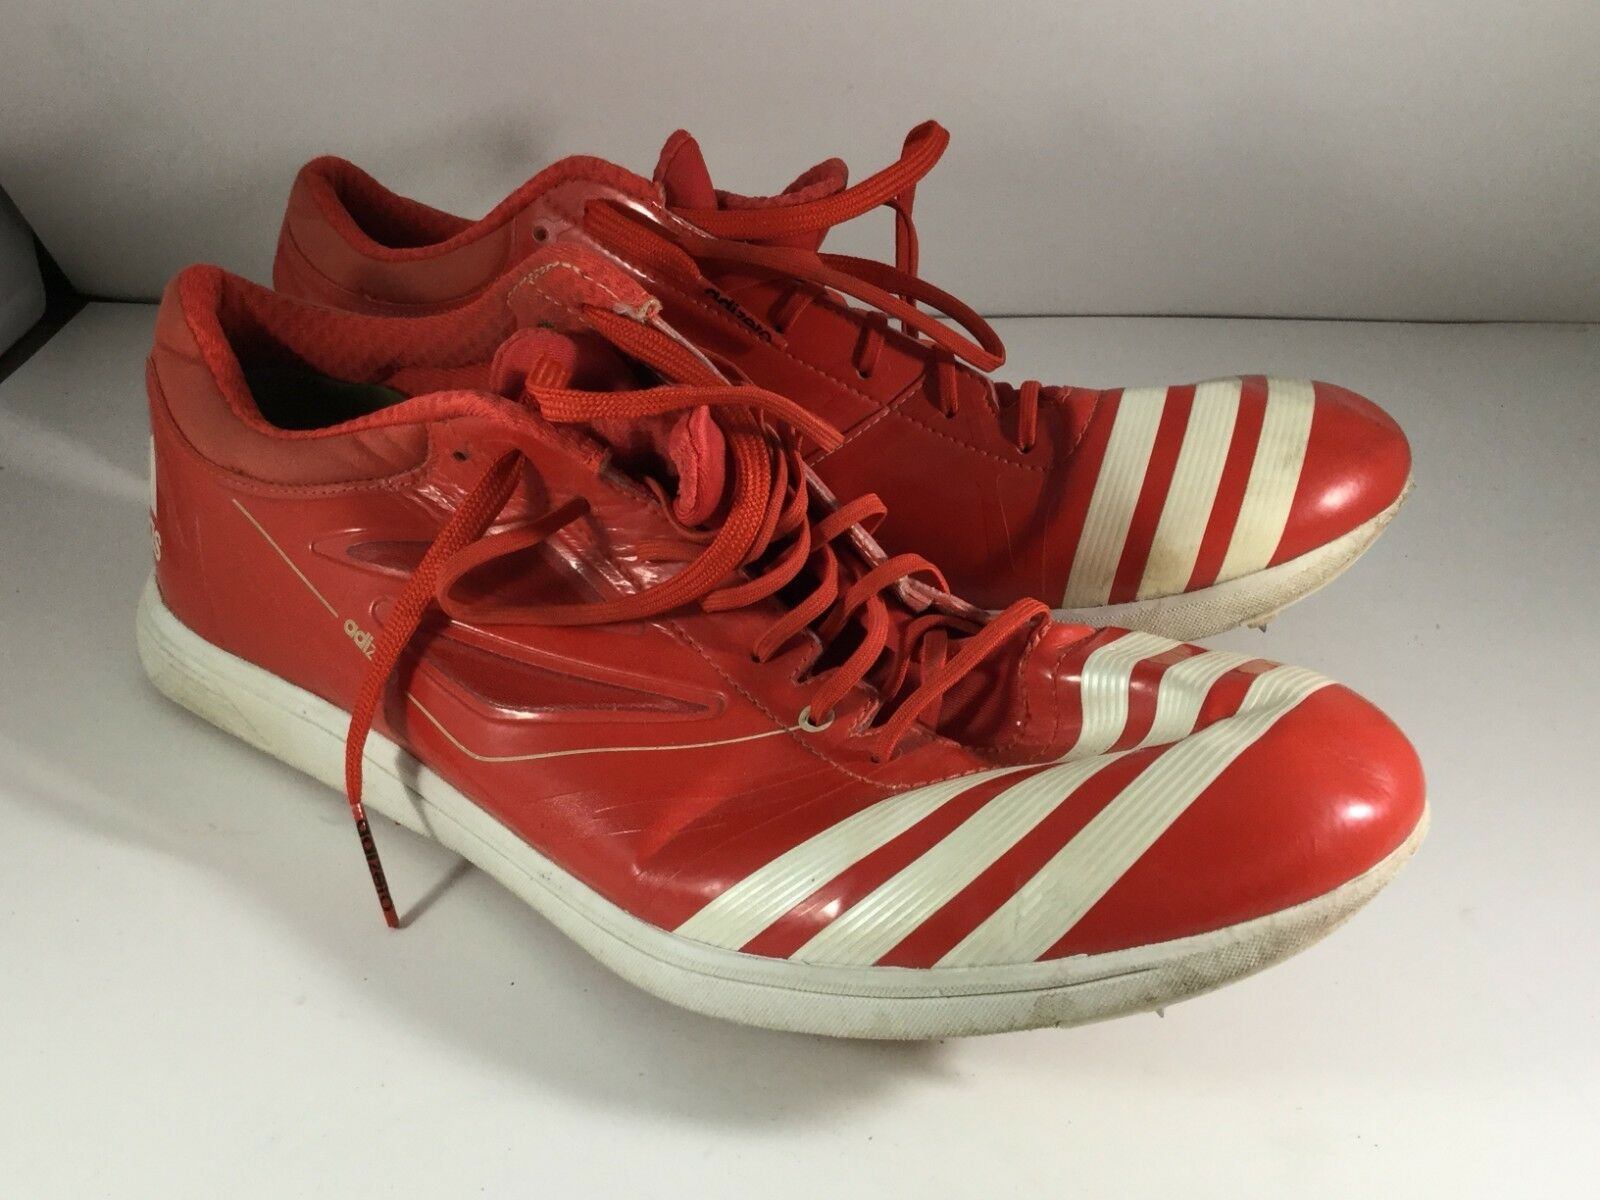 adidas adizero tj 2 - training rot läuft, cross - training - (männer) ff057b